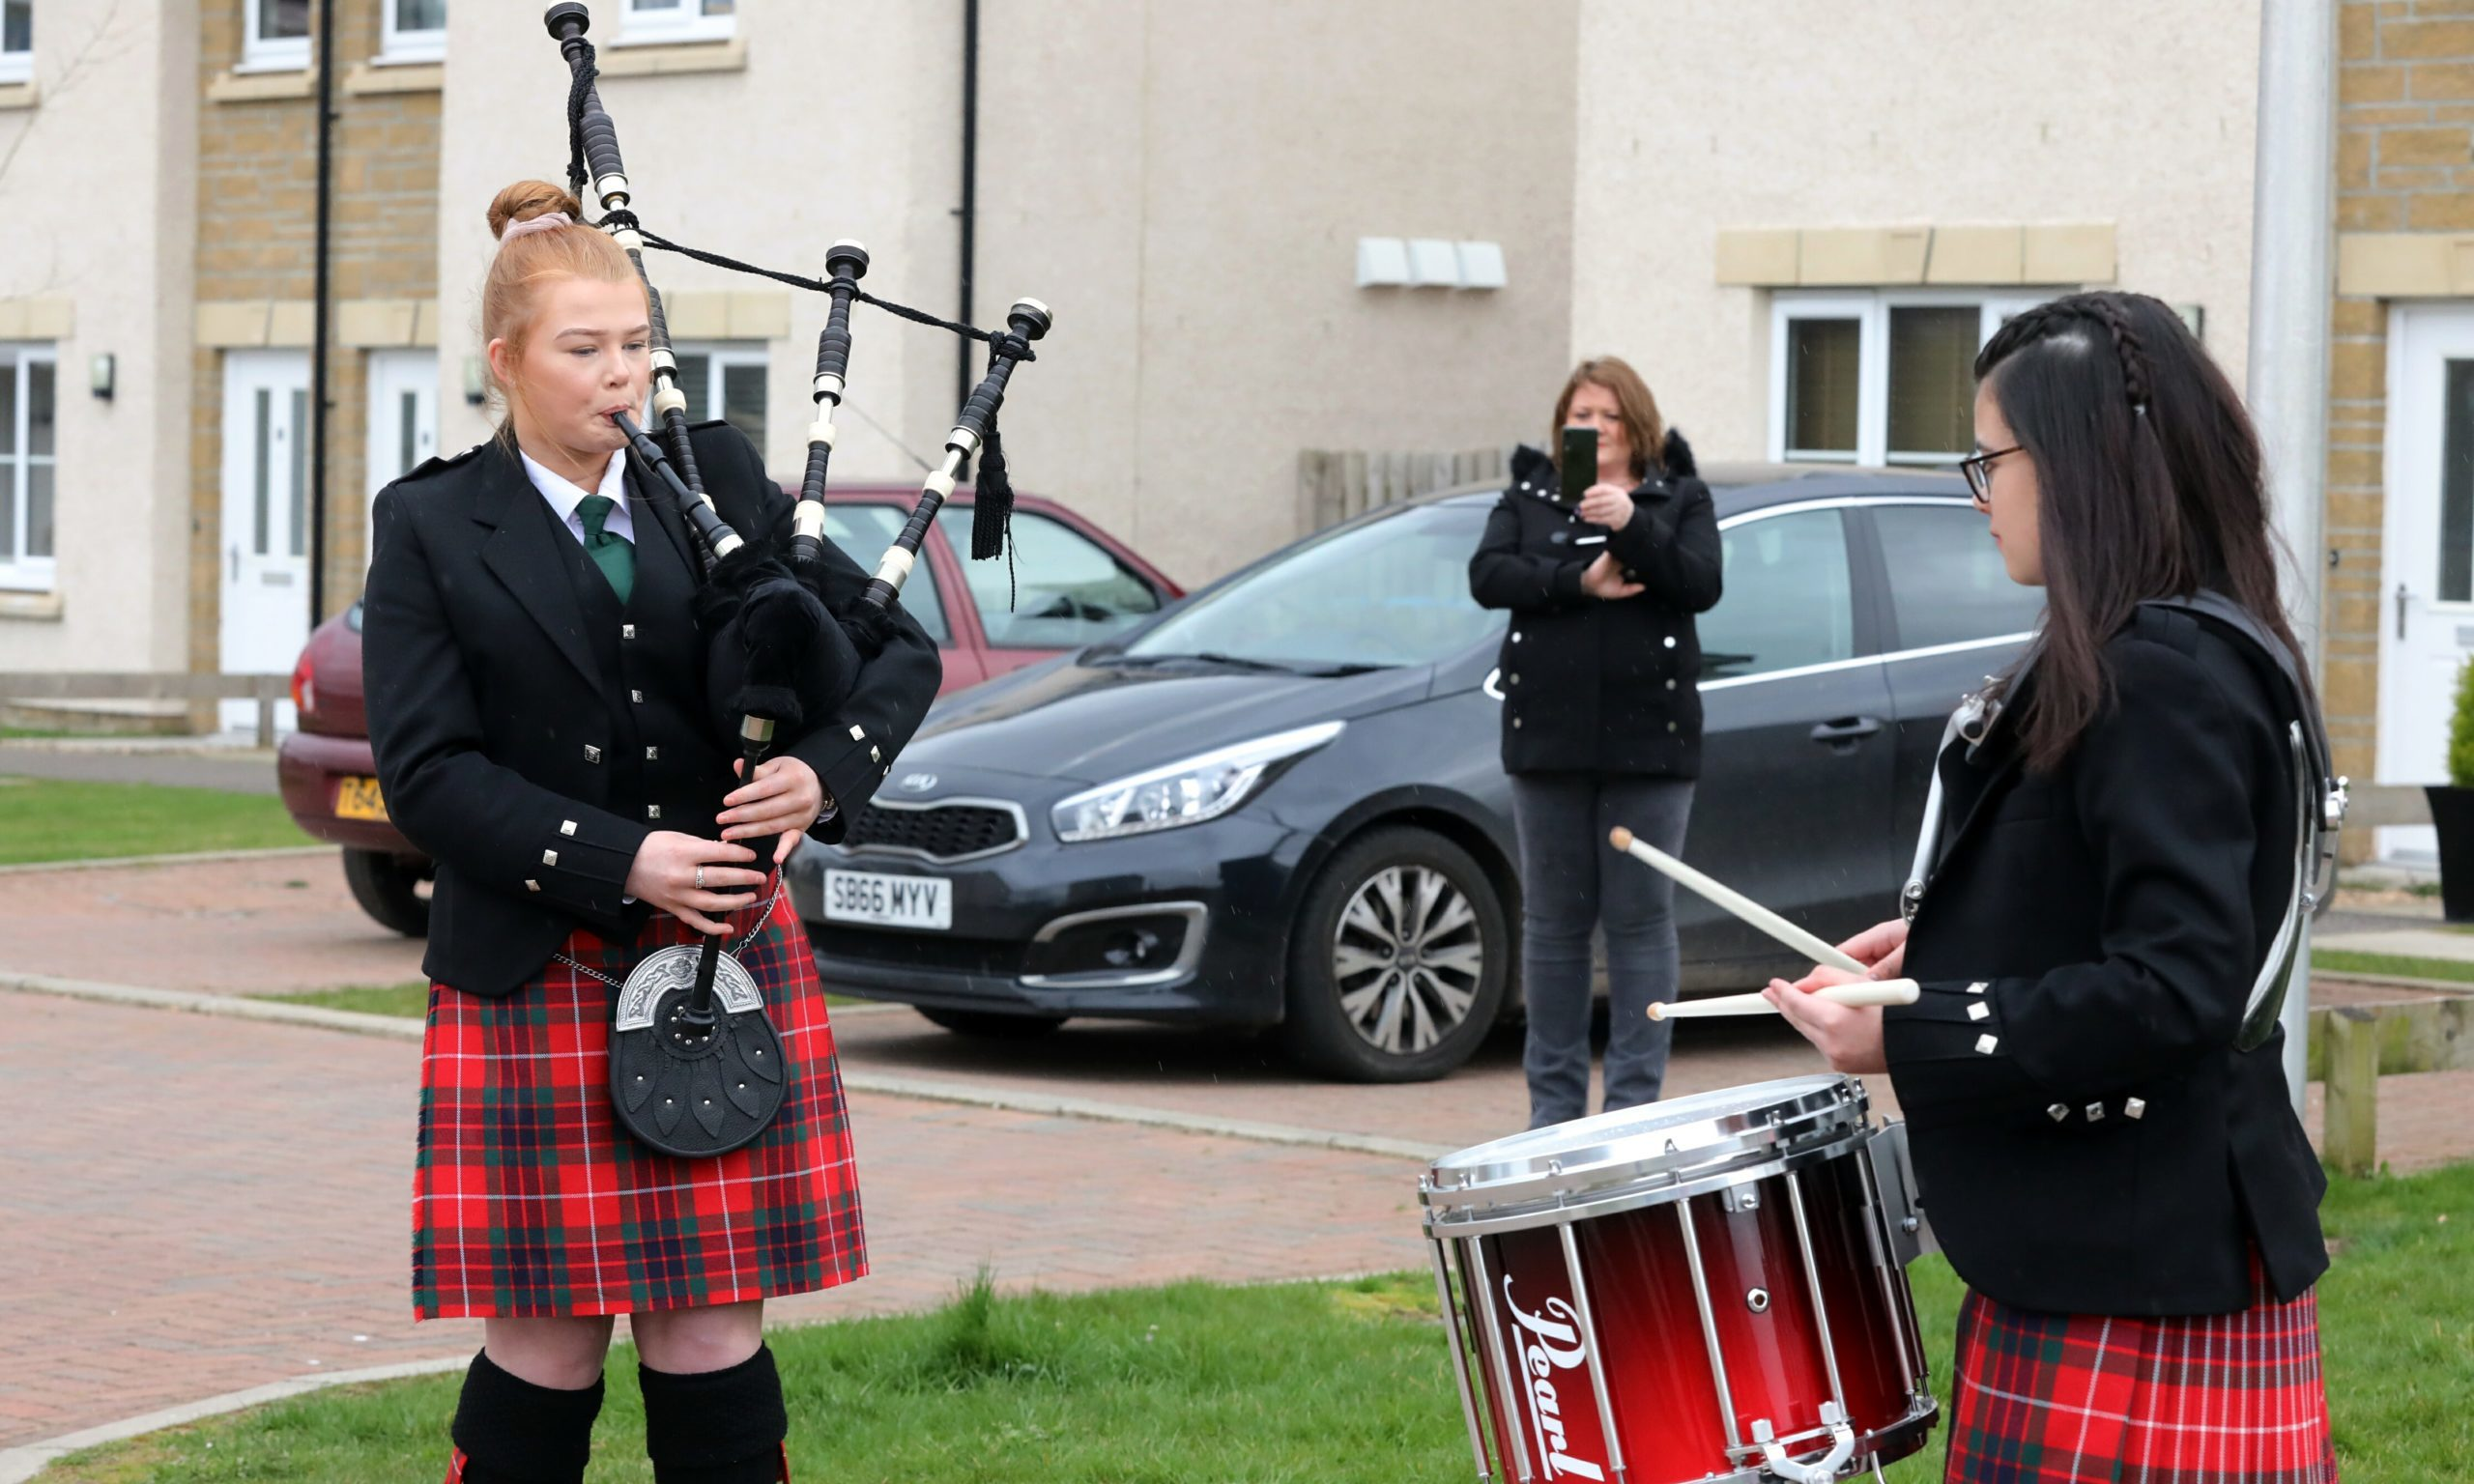 Piper Chloe Blakely (14) and Eva Seba (13) of the Community School of Auchterarder Pipe Band.